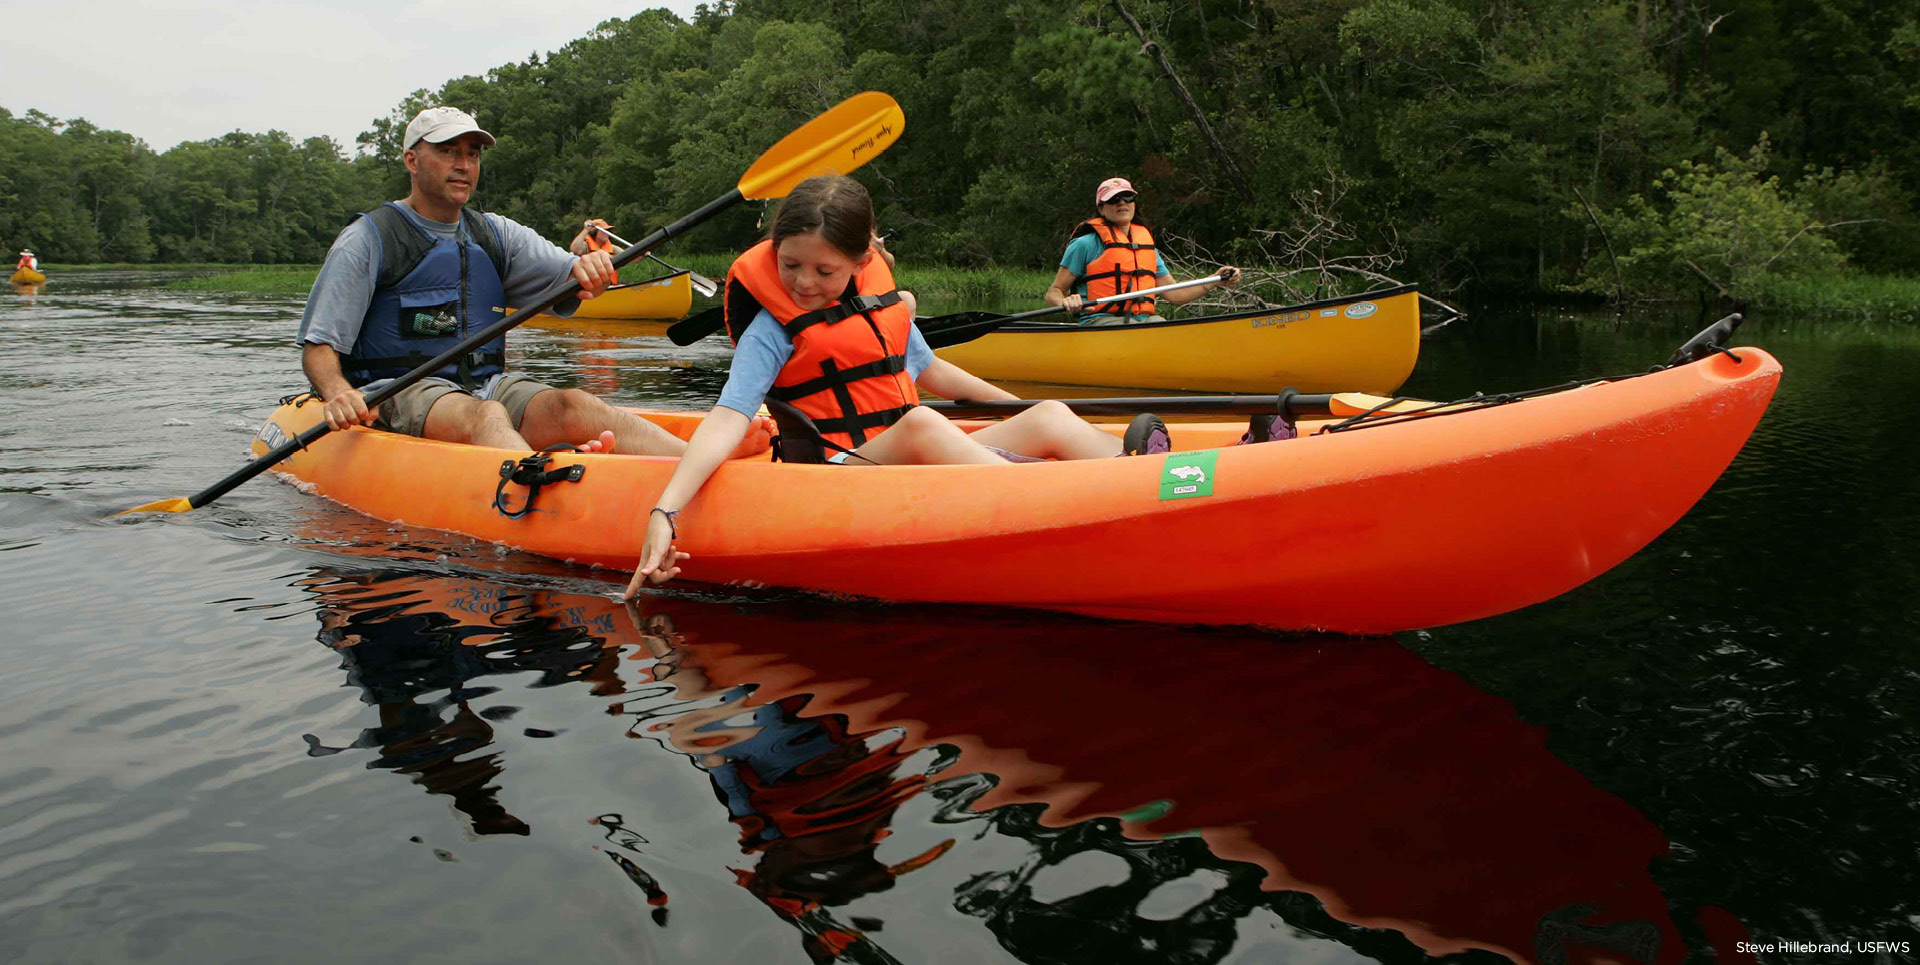 A small group of people kayaking.